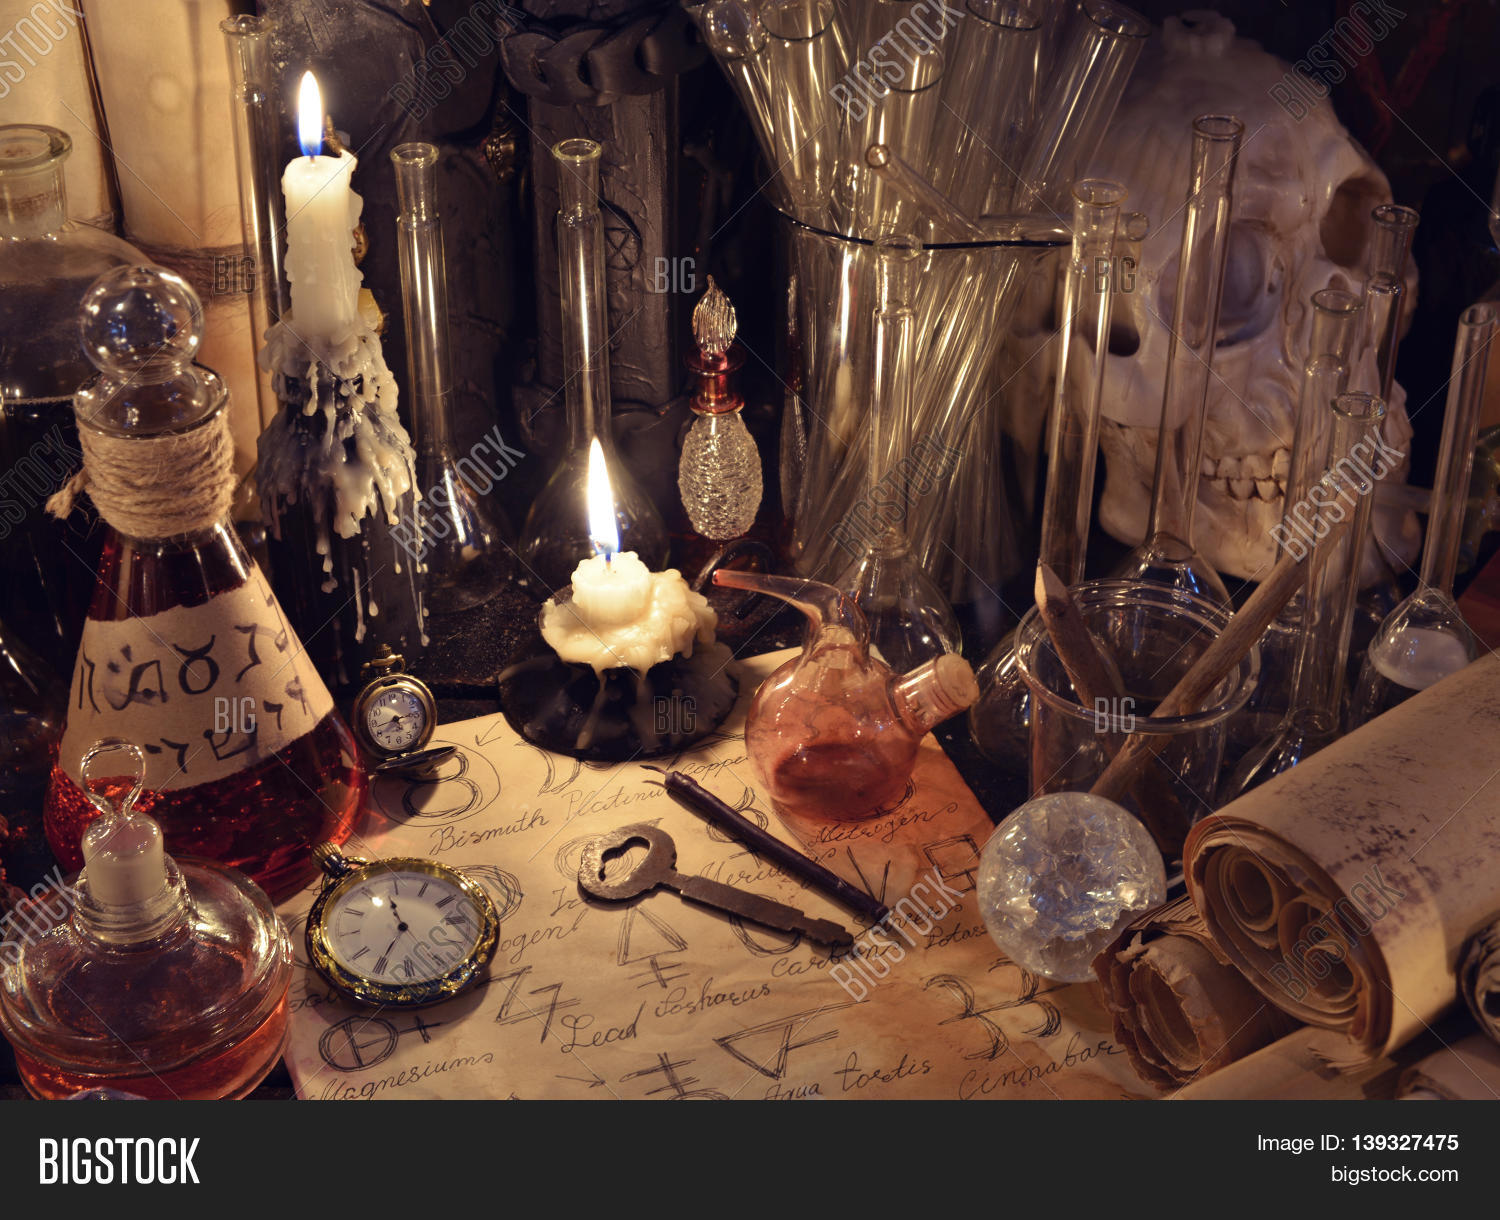 Still life vintage bottles key image photo bigstock still life with vintage bottles key magic objects and parchments old pharmacy biocorpaavc Gallery